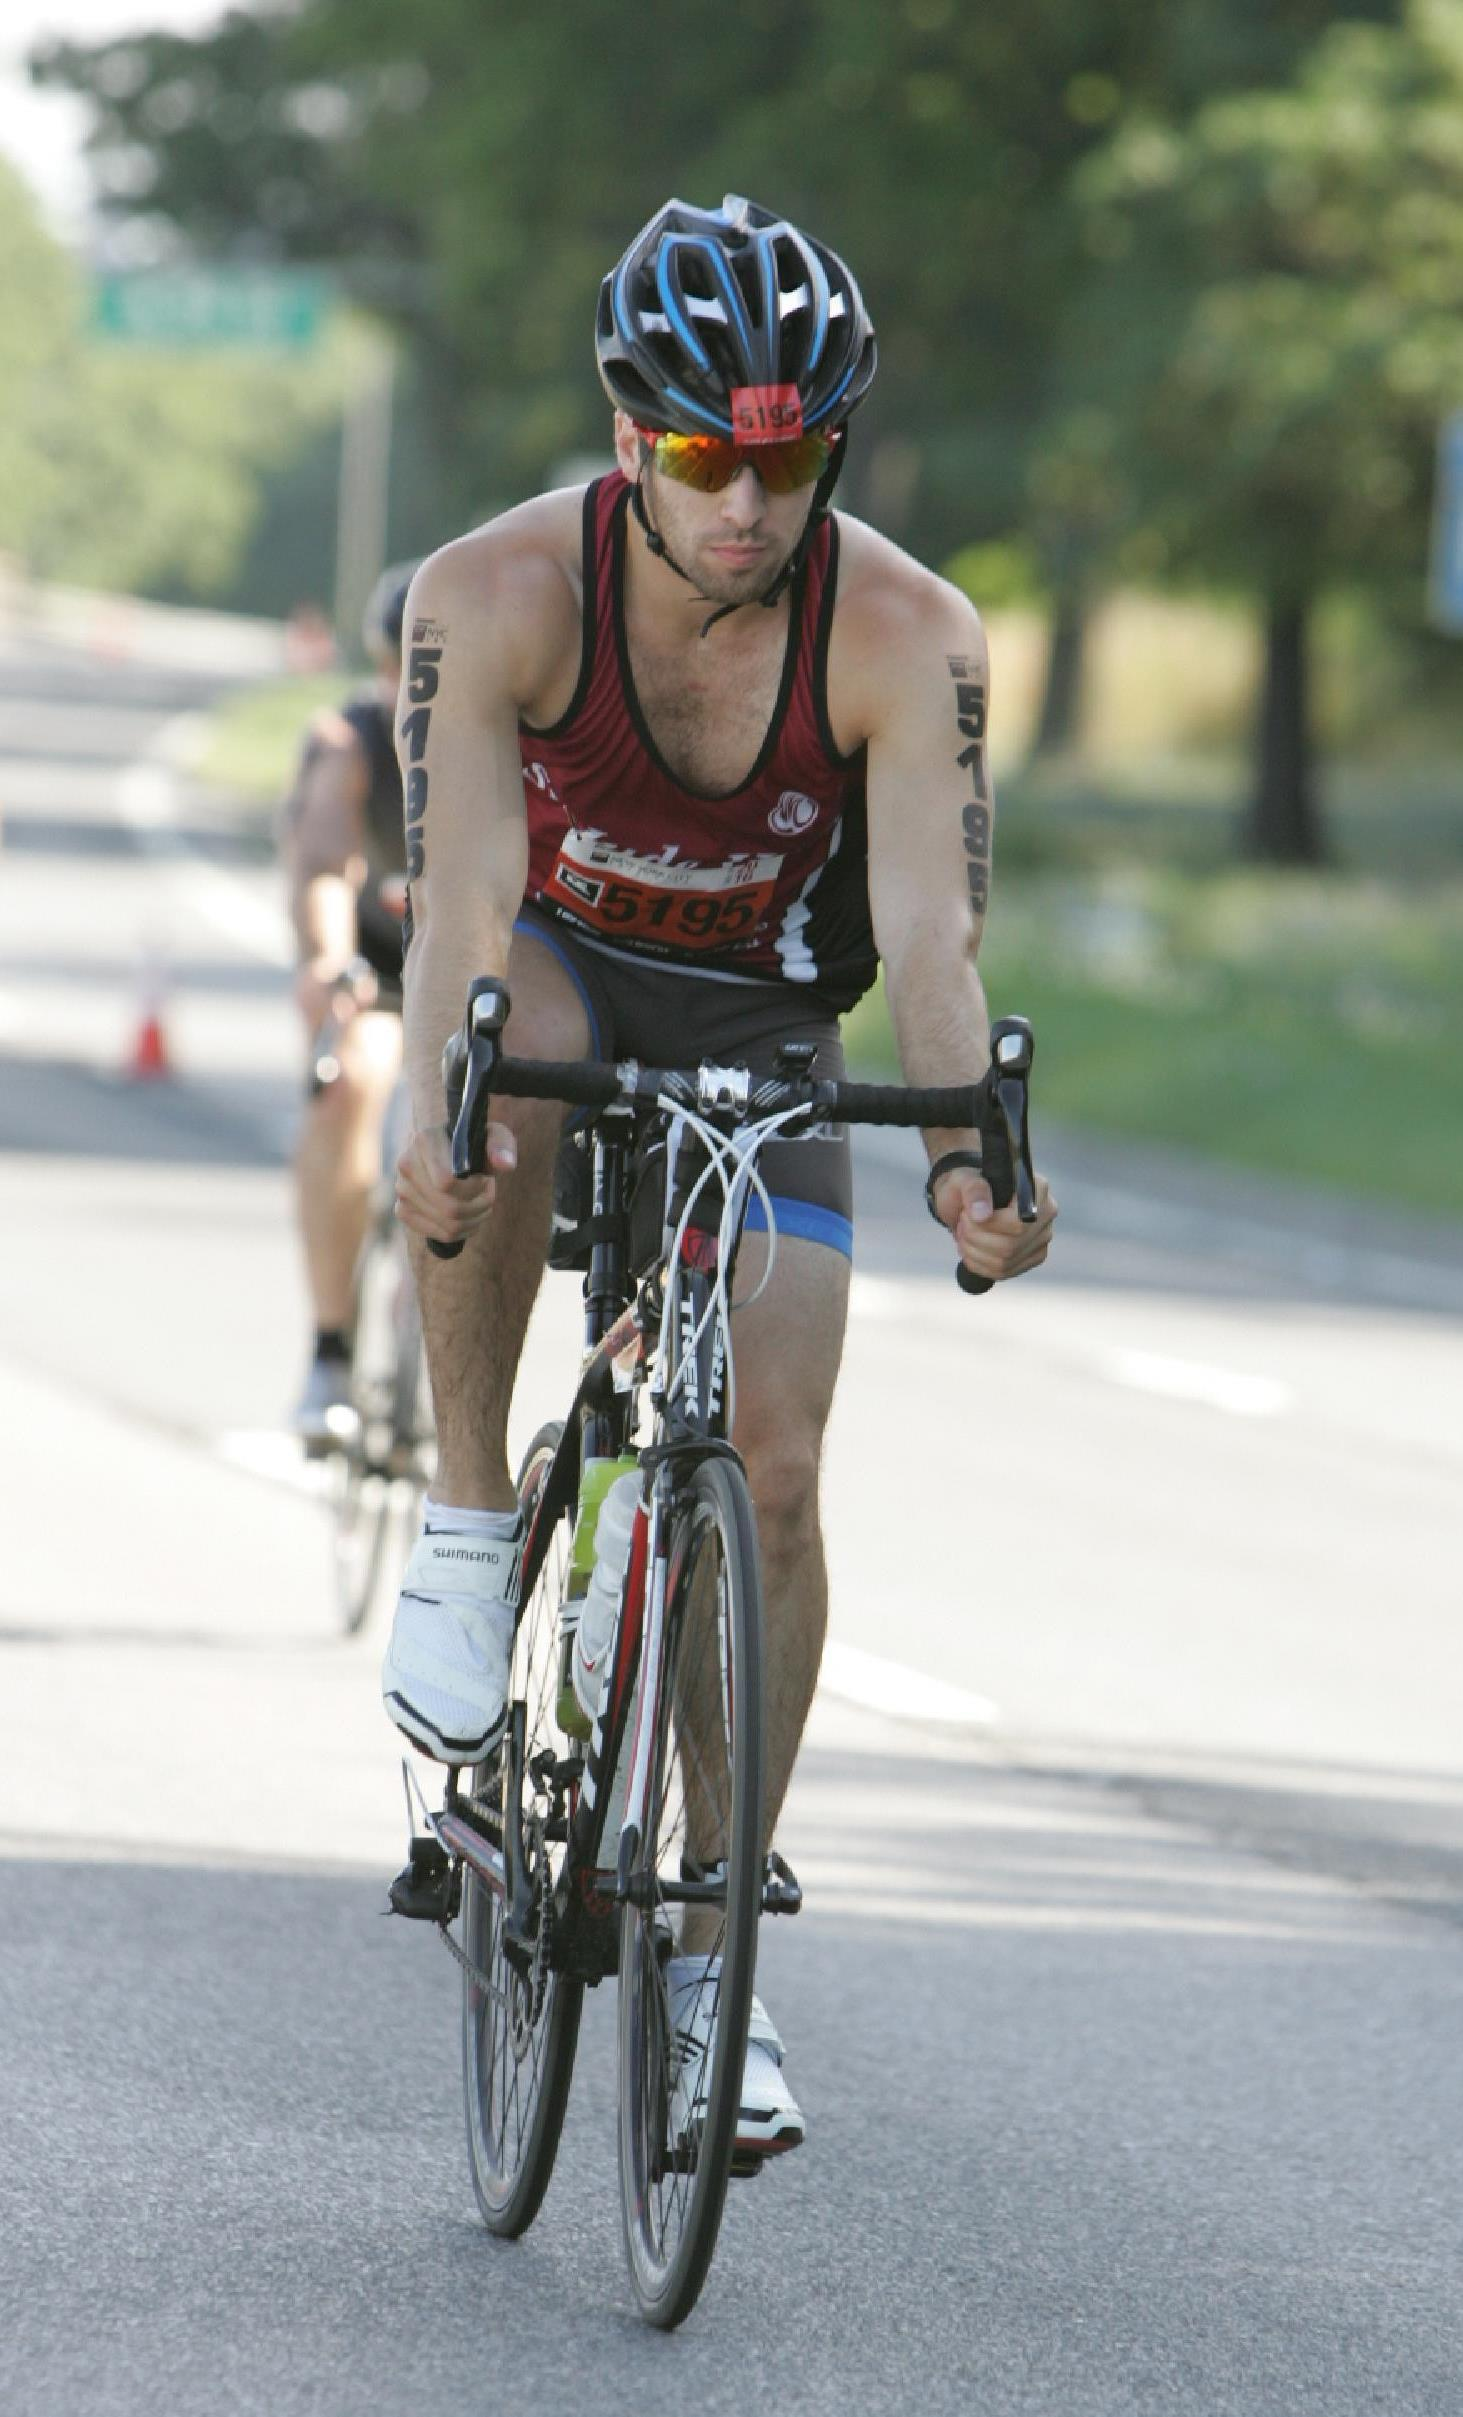 Ben Samit rides the bike portion of the NYC Triathlon 2016